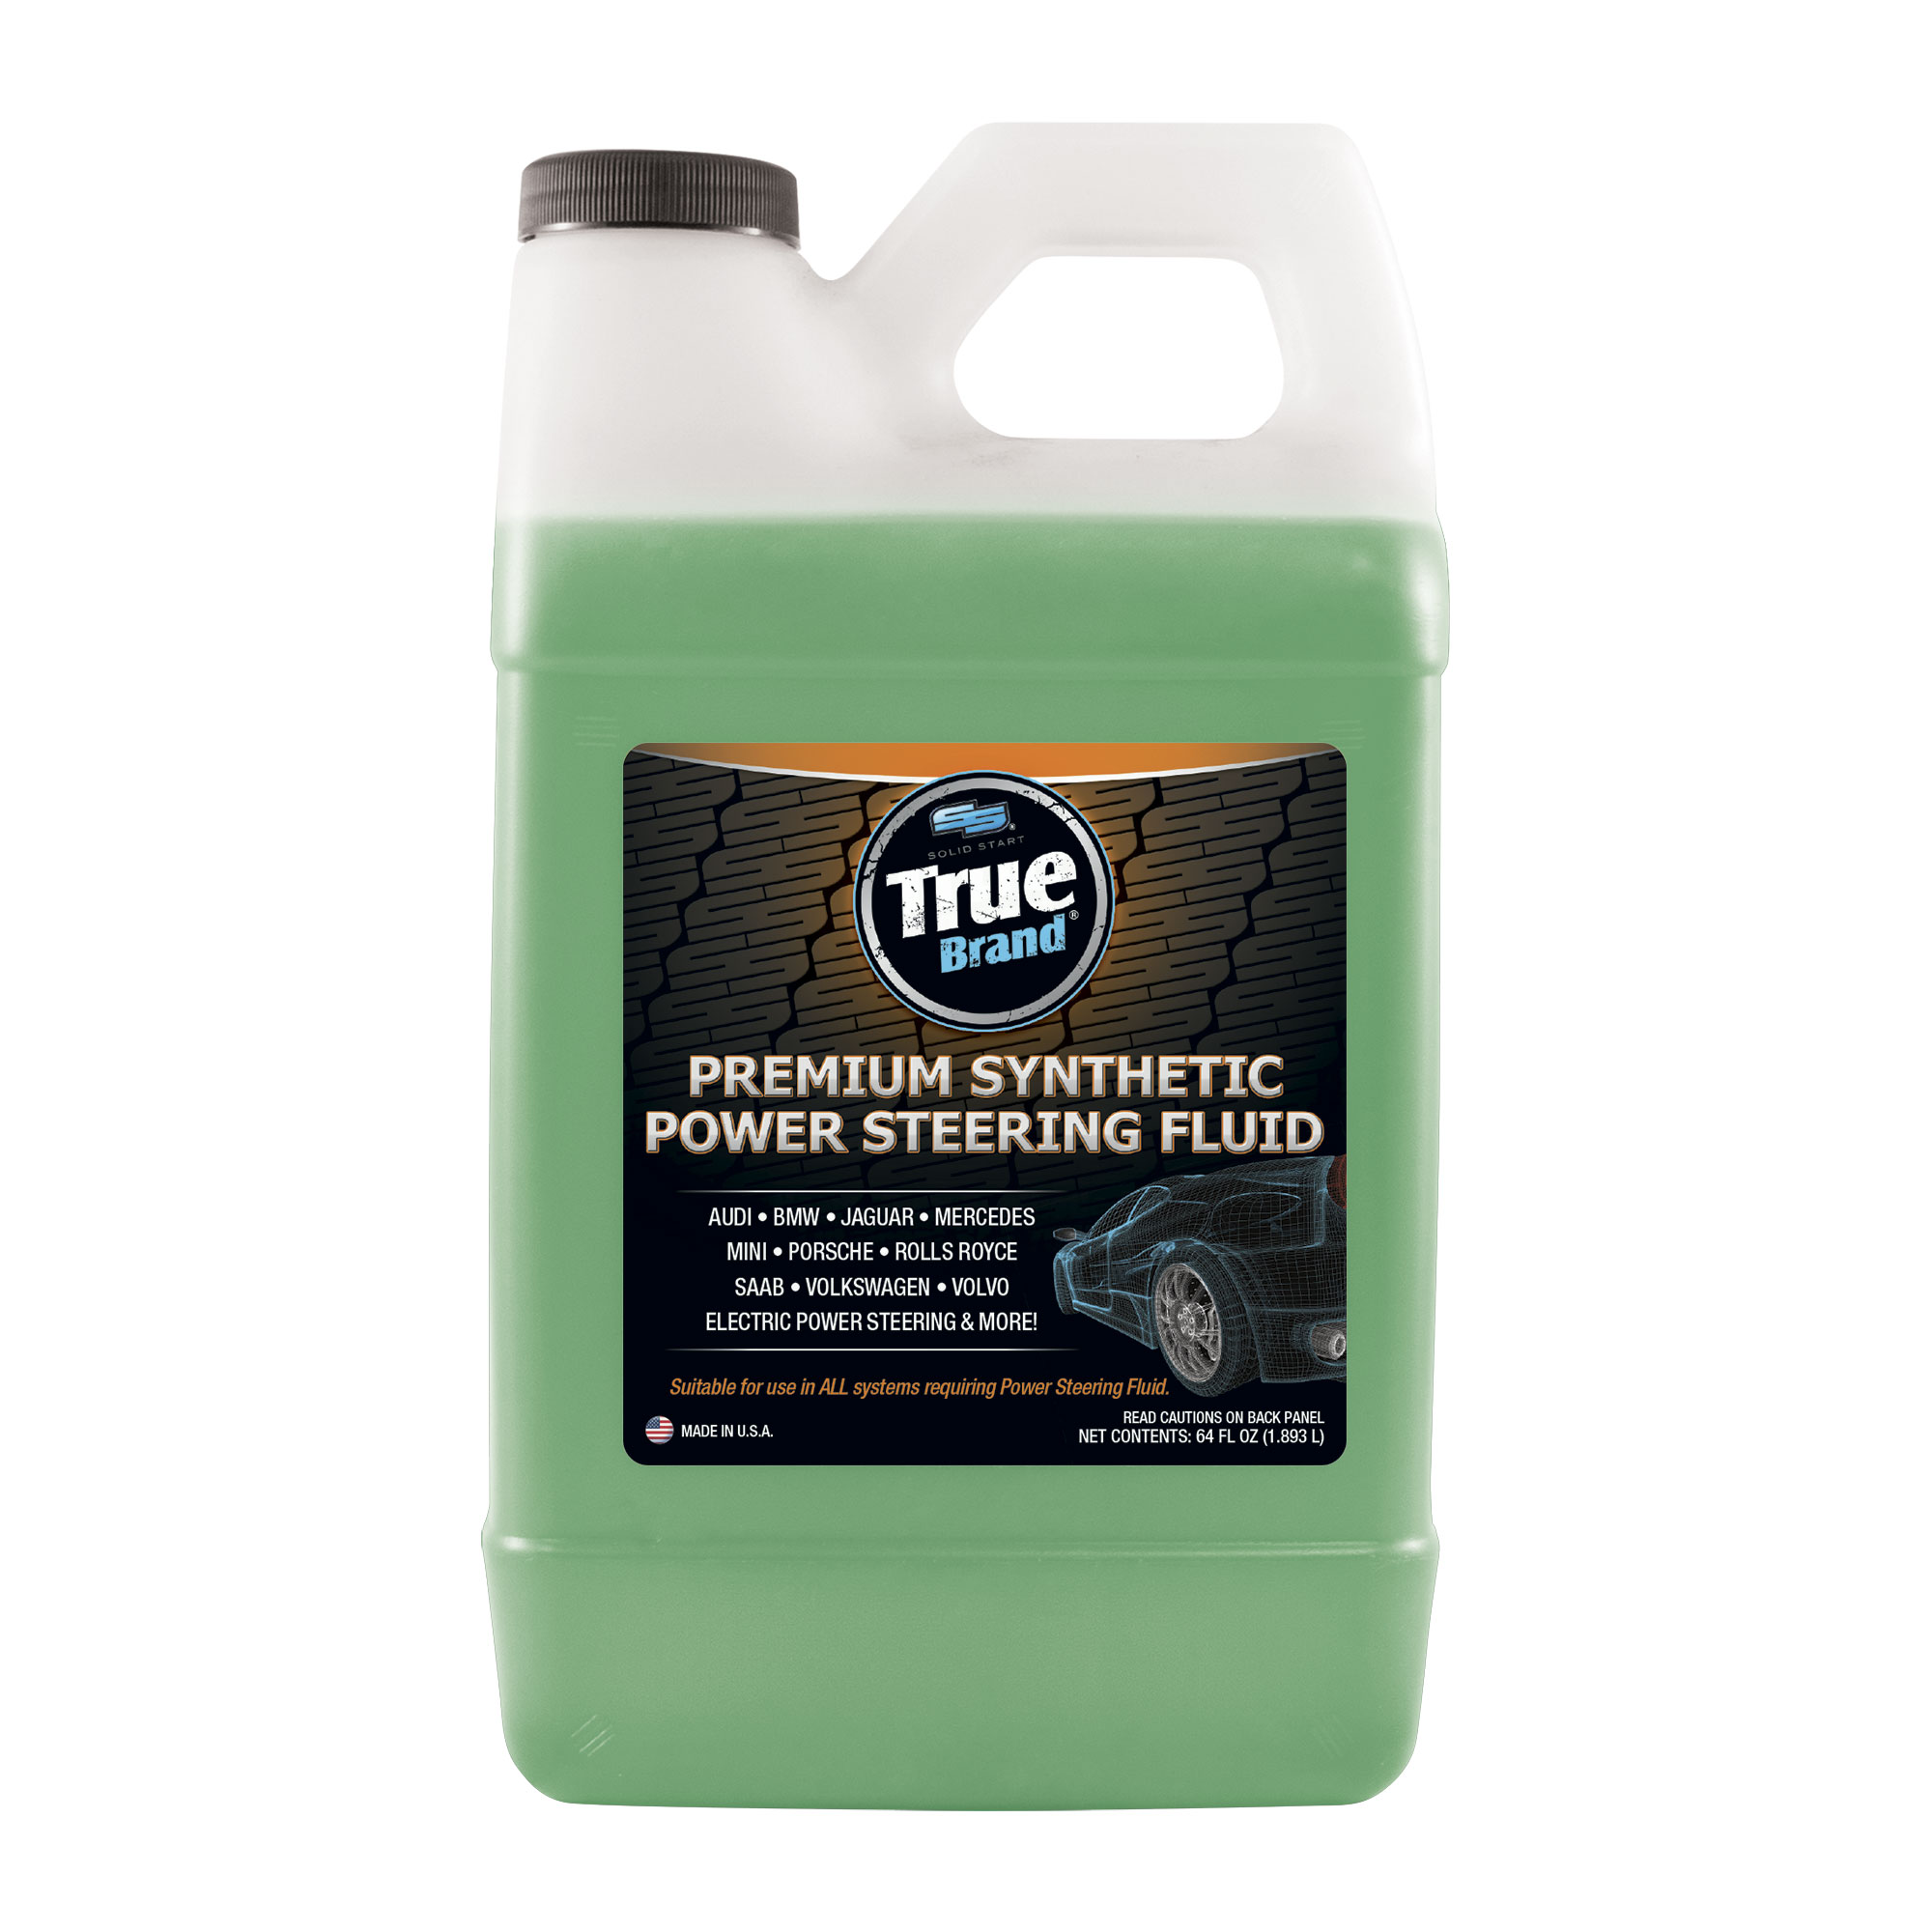 premium synthetic power steering fluid 64oz solid start true brand solid start true brand